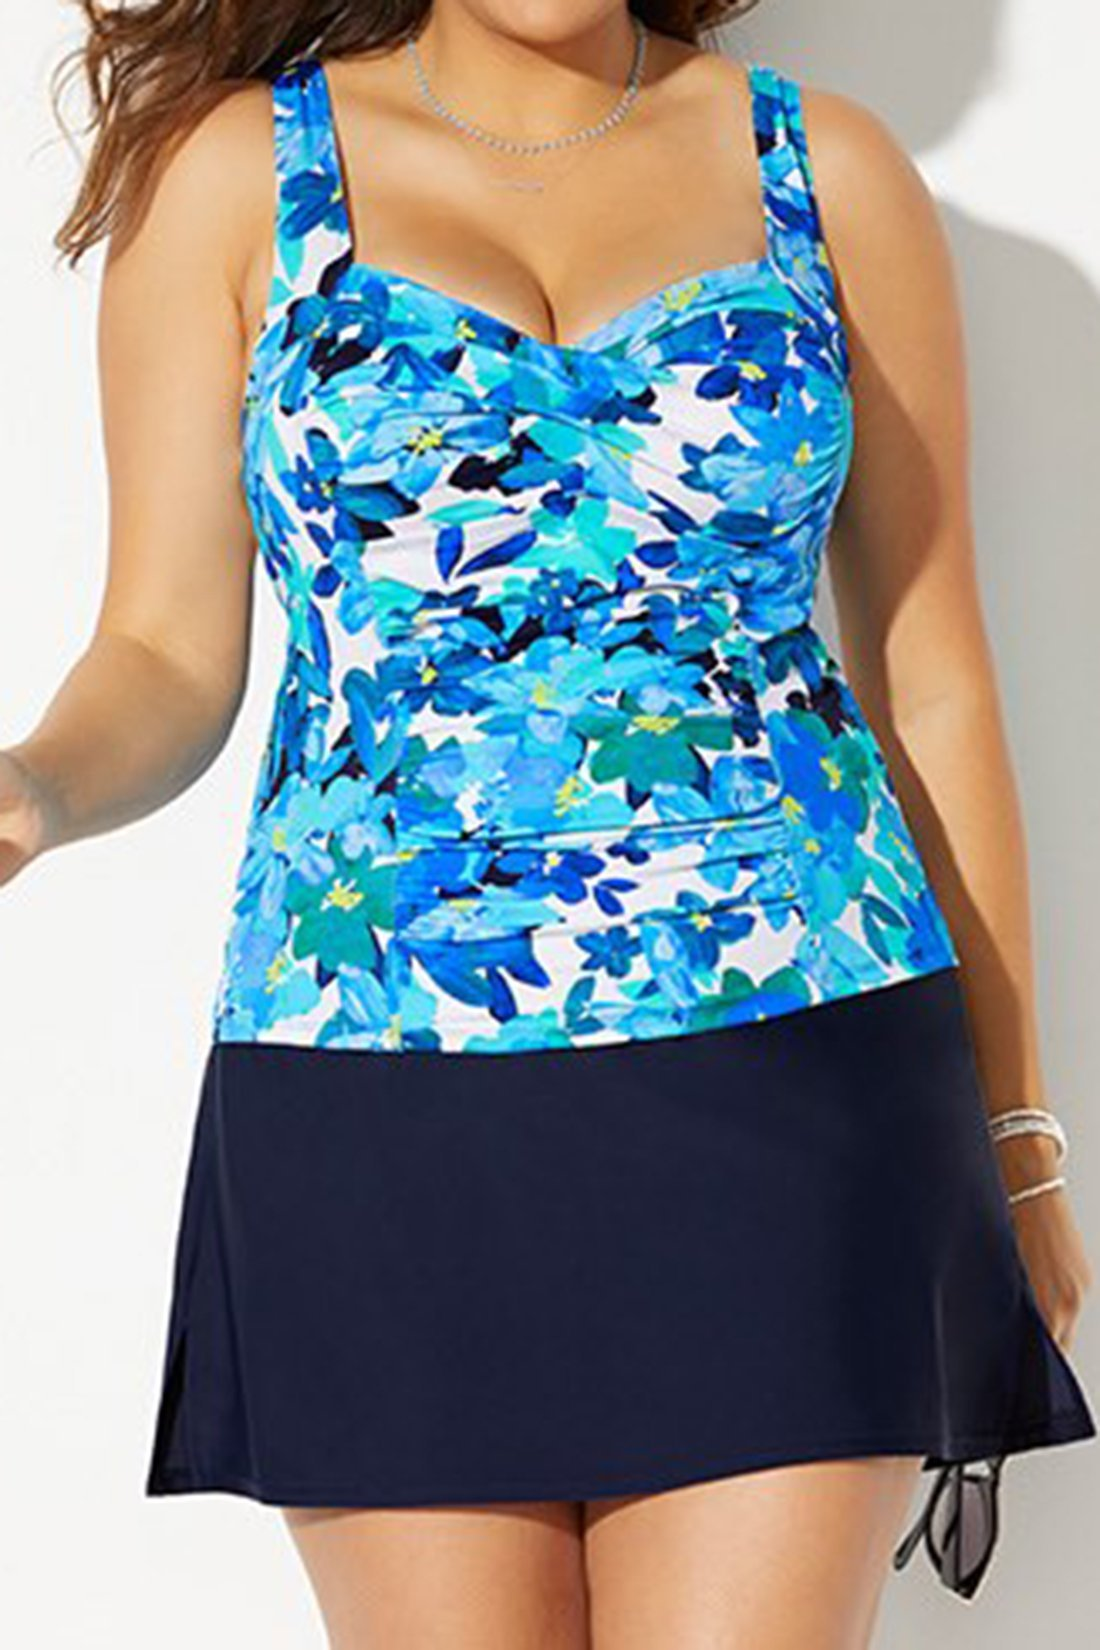 BELLFLOWER RUCHED TWIST FRONT TANKINI WITH NAVY SIDE SLIT SKIRT choichic.com